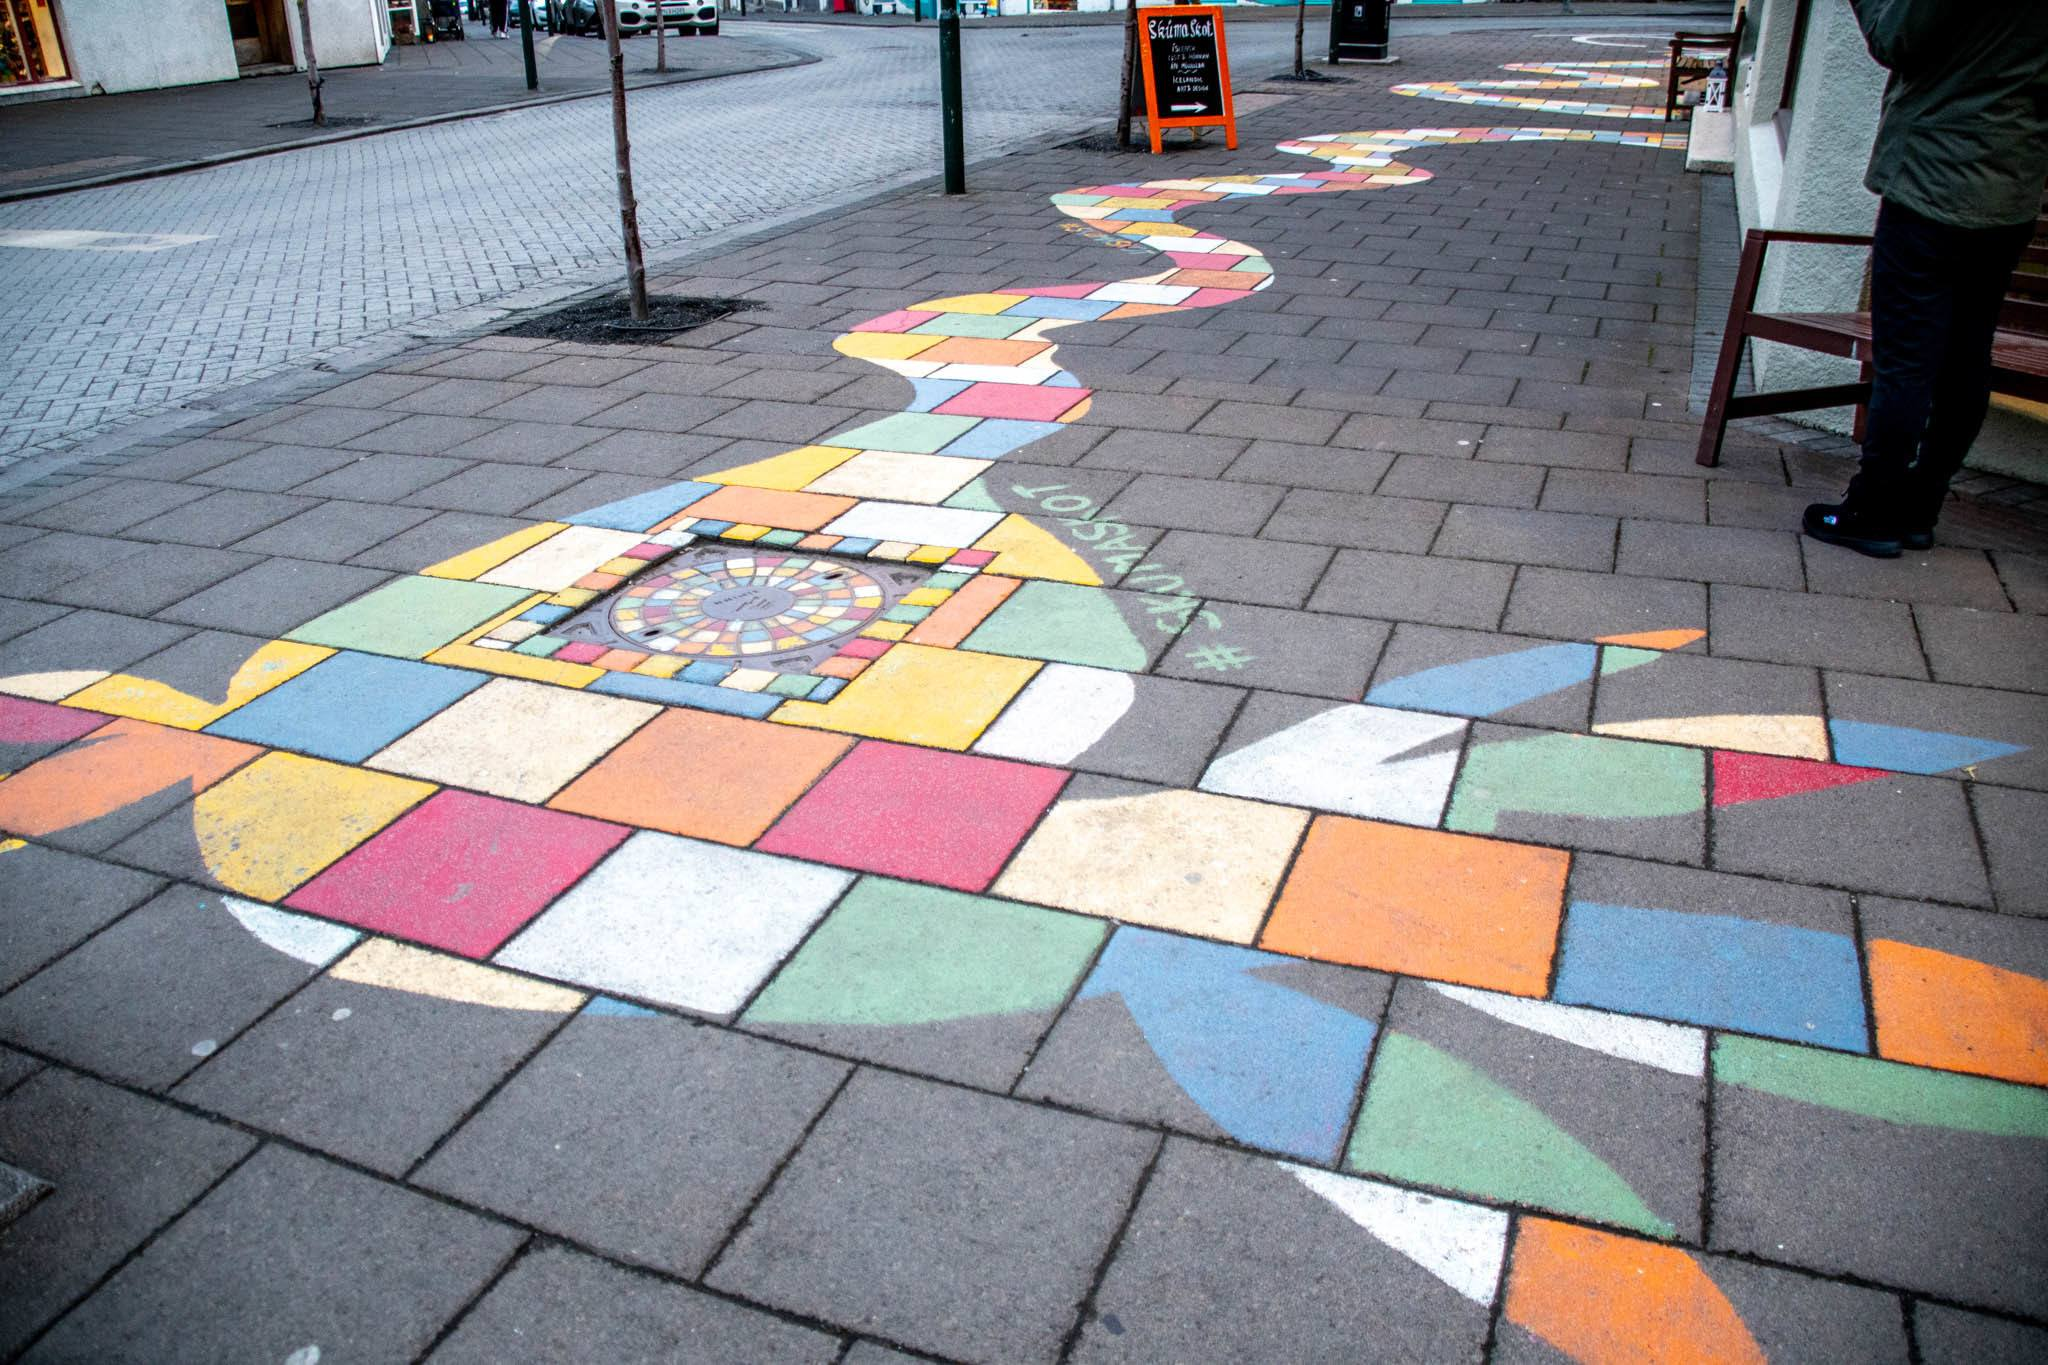 Iceland arts are both colorful and playful, as can be seen in this sidewalk art.